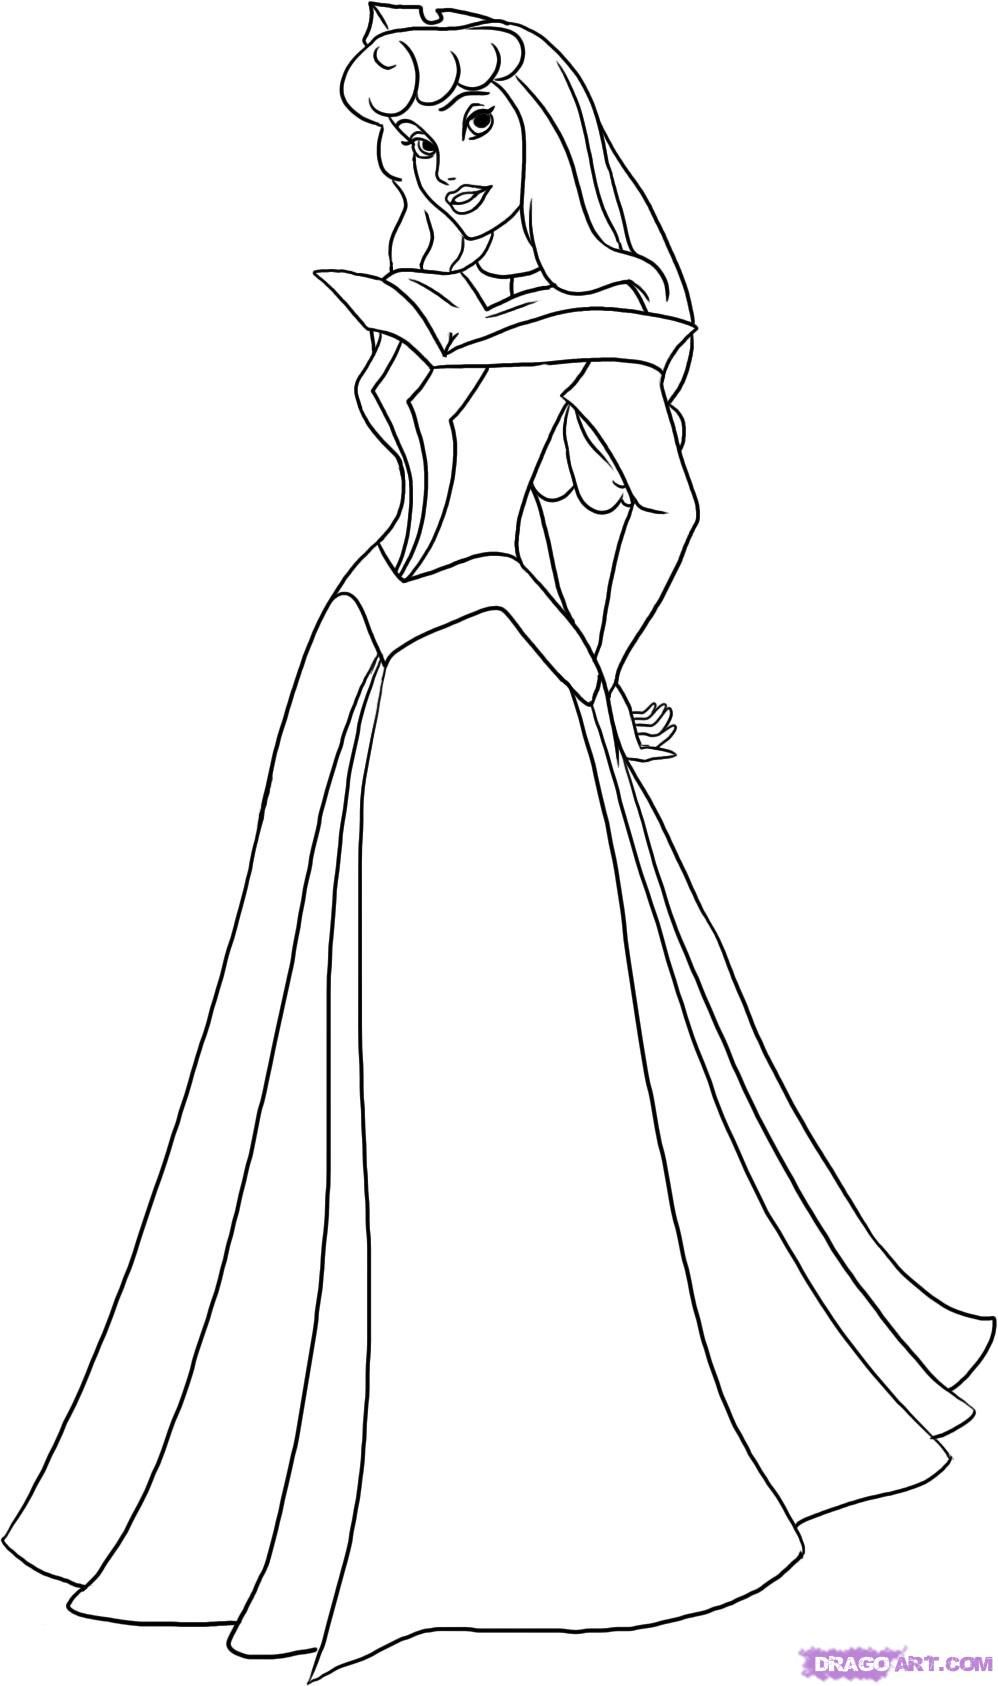 princess aurora coloring pages Princess Aurora Coloring Page | Inspirations | Coloring pages  princess aurora coloring pages